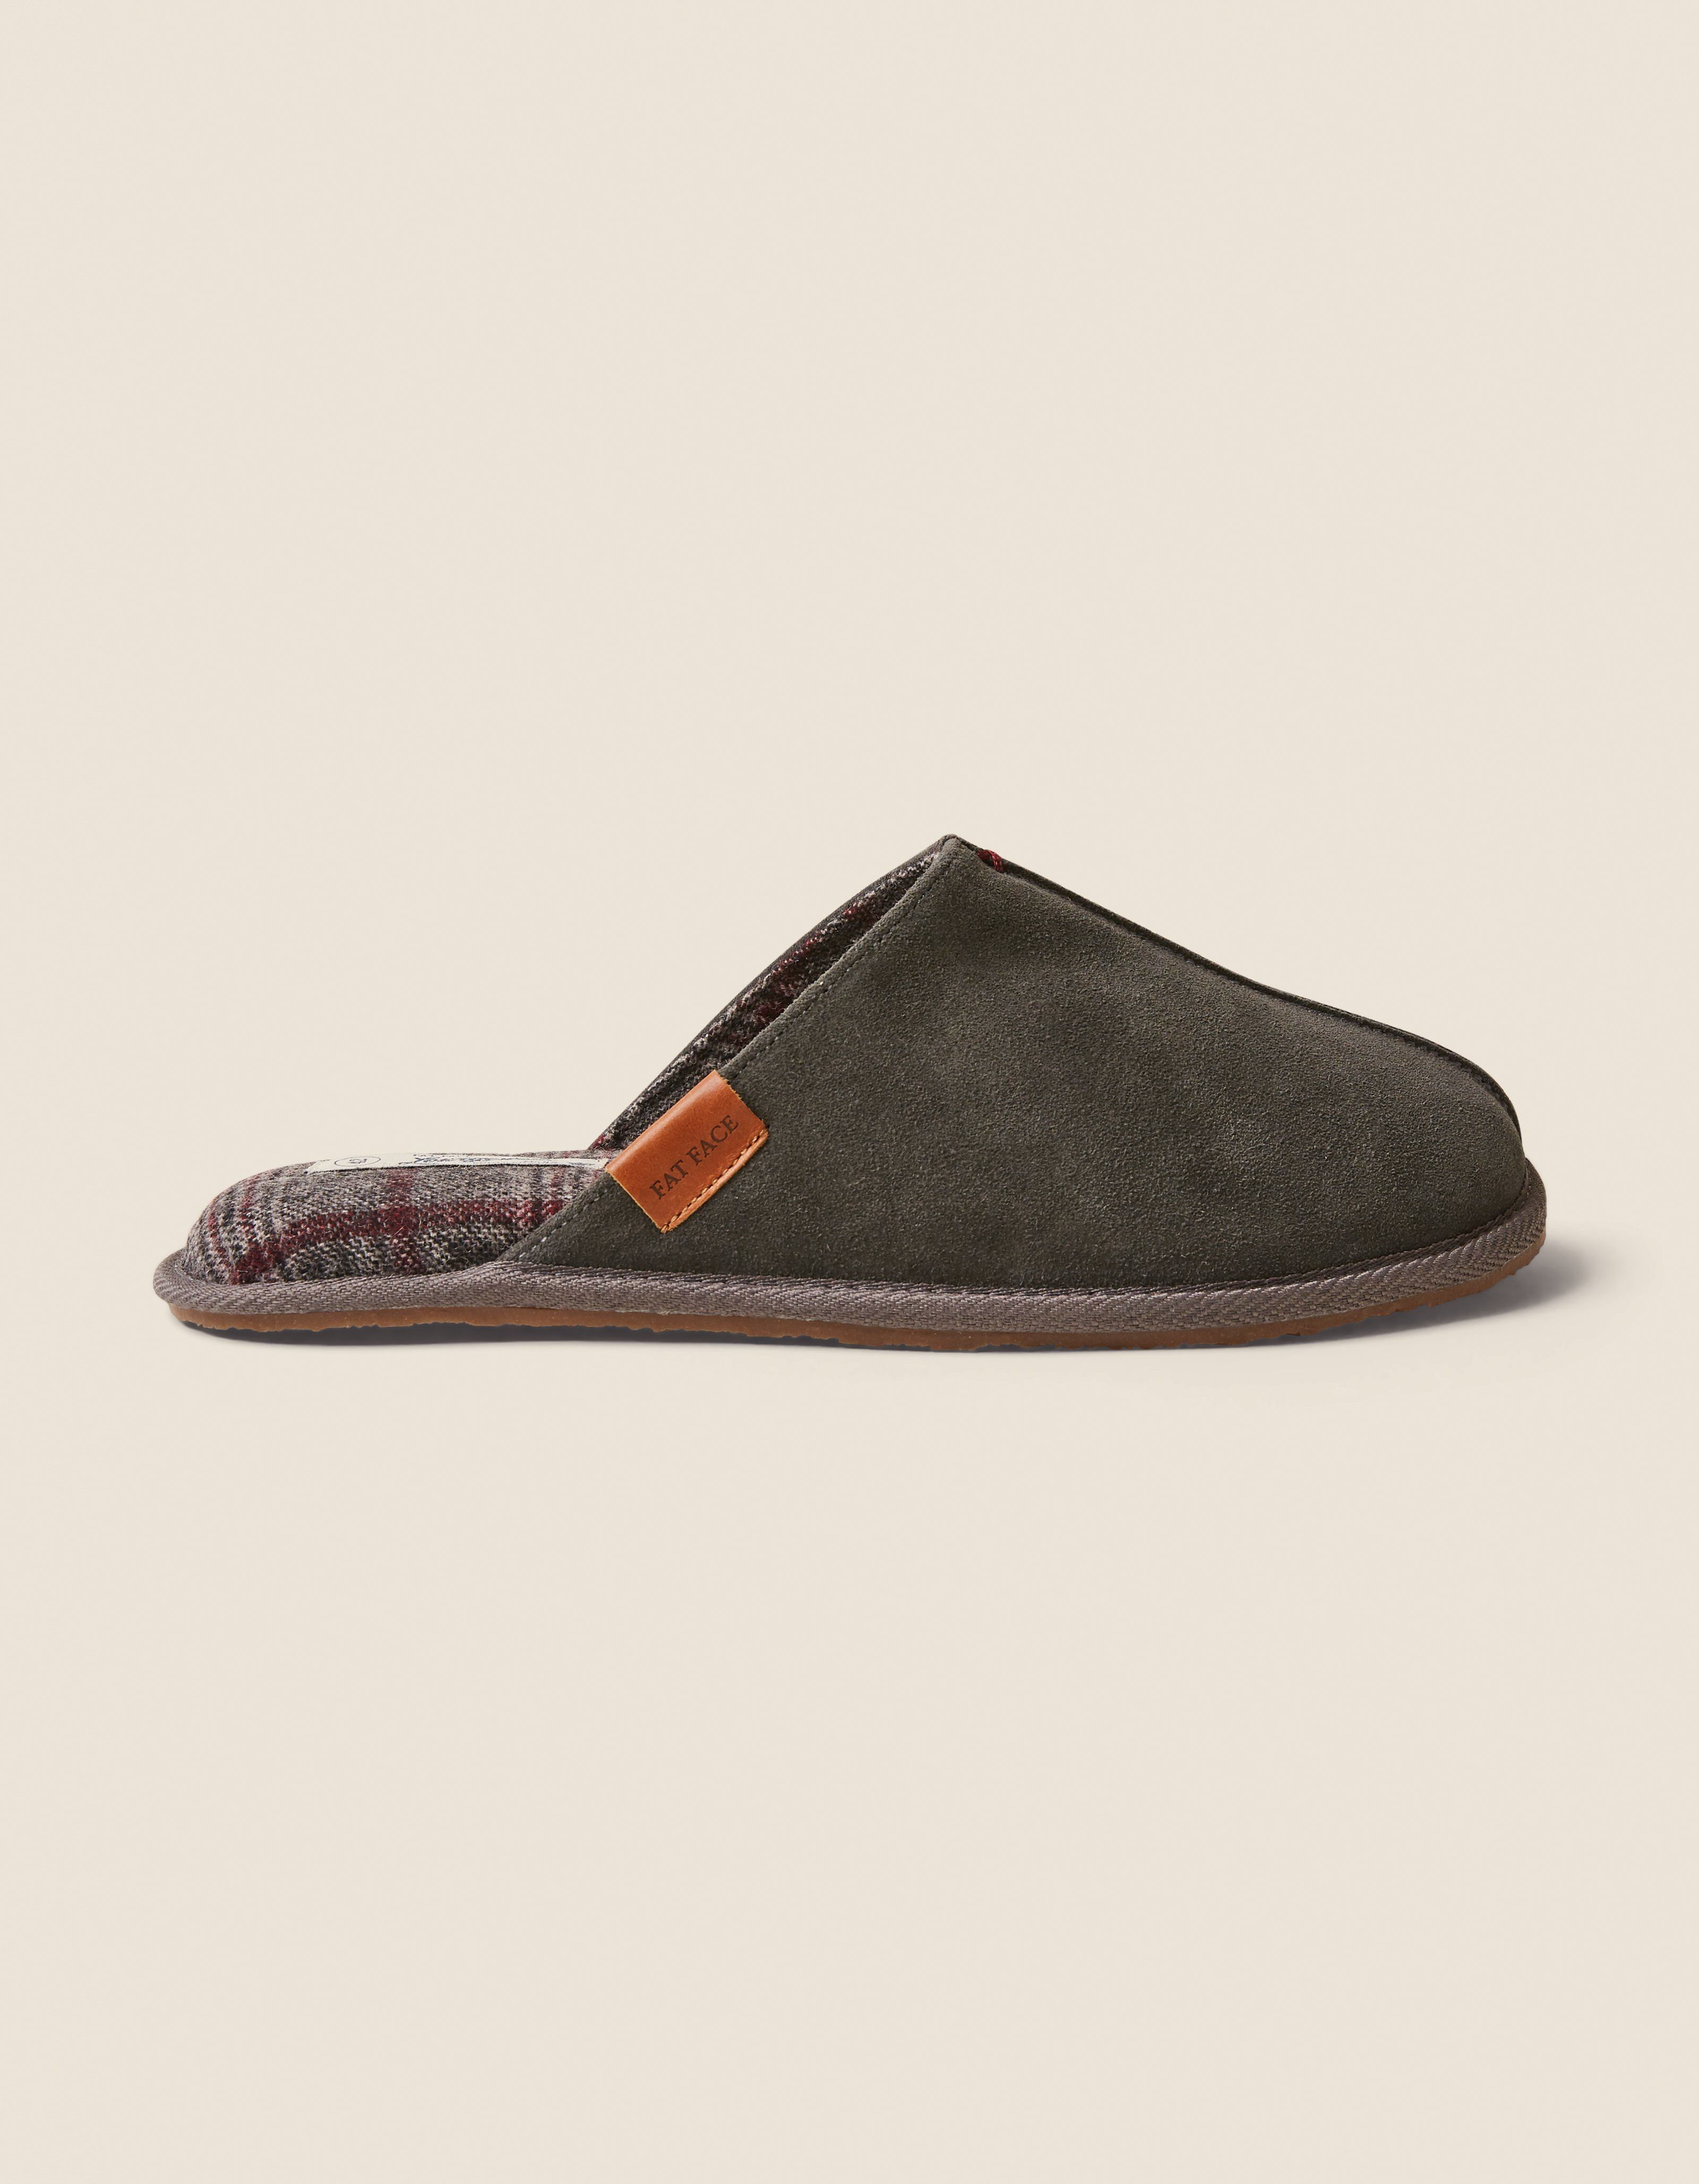 Jerry Suede Mule Slippers by Fat Face